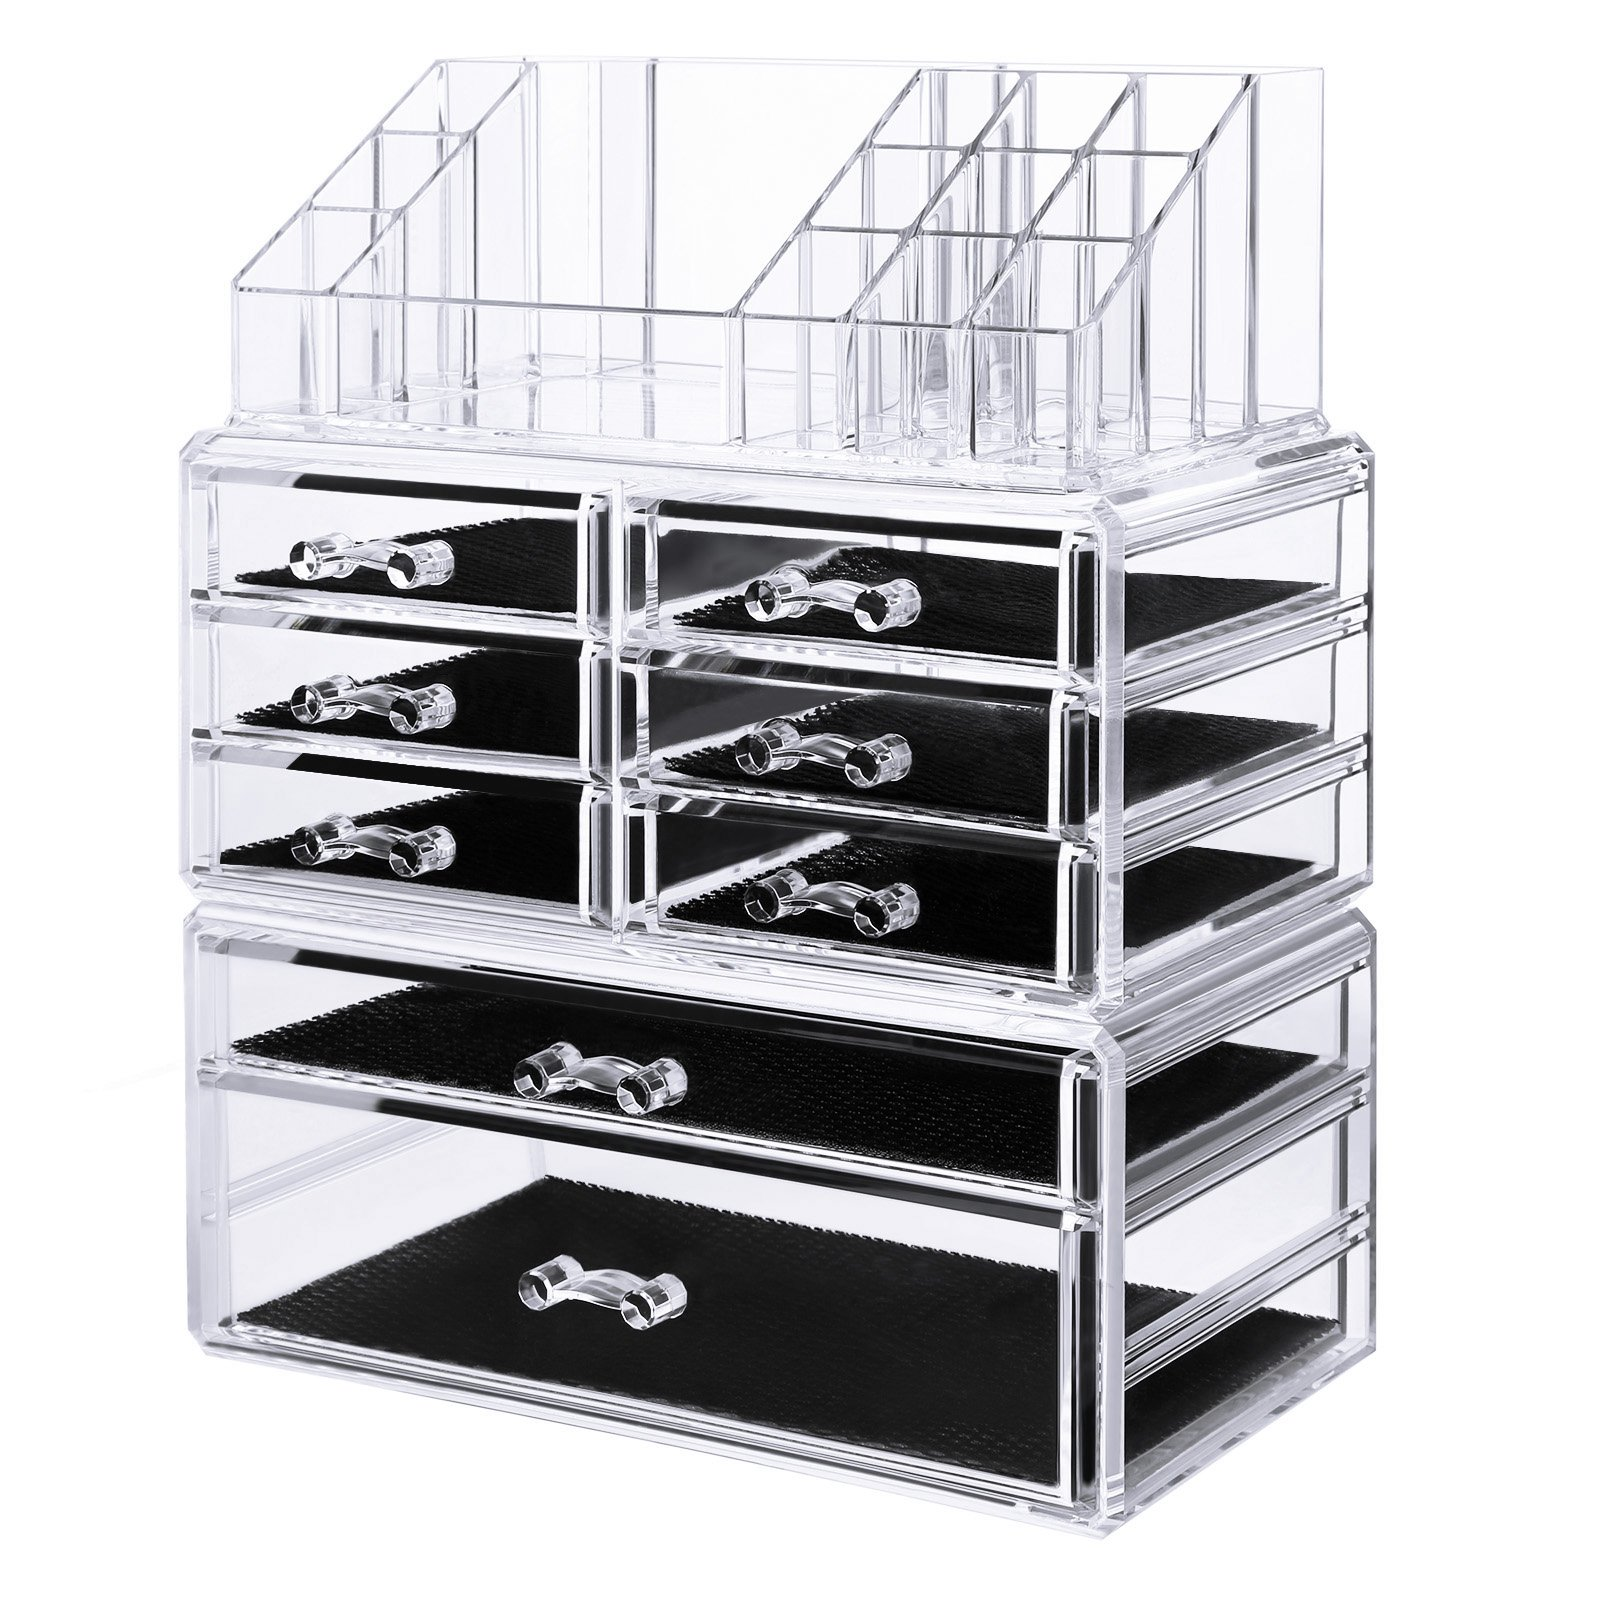 SONGMICS Acrylic Makeup Organizer 3 Pieces Set Cosmetic Storage Jewelry Display Case with 8 Drawers 16 Top Compartments for Brushes Pallets Powder Foundations Clear UJMU08T